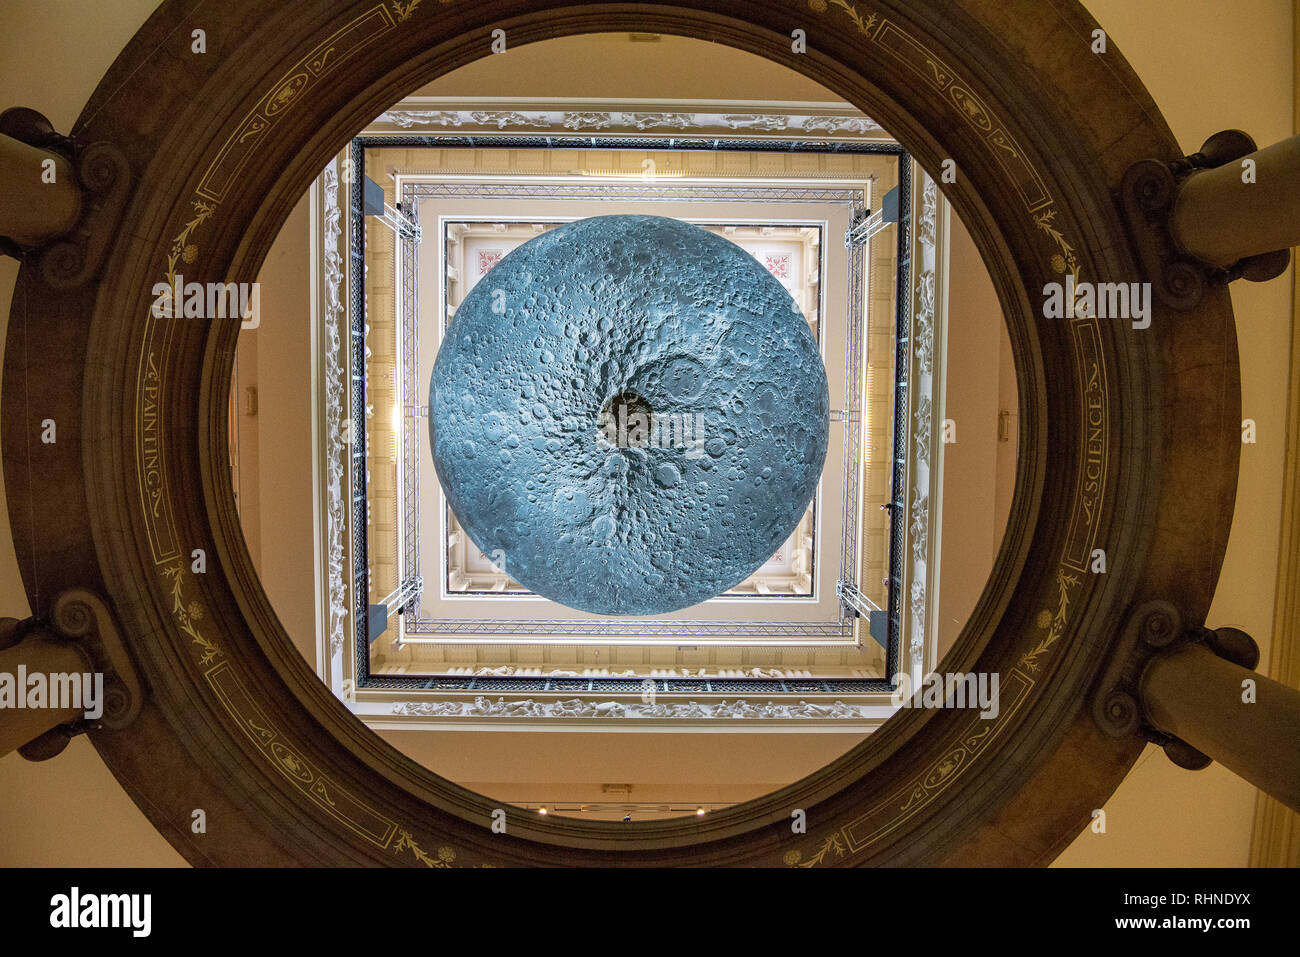 Preston, UK. 03rd Feb, 2019. The Museum of the Moon, an artwork by Luke Jerram, at the Harris Museum and Art Gallery, Preston, Lancashire. The seven metres in diameter sphere will tour various exhibitions and festivals around the world. Credit: John Eveson/Alamy Live News - Stock Image